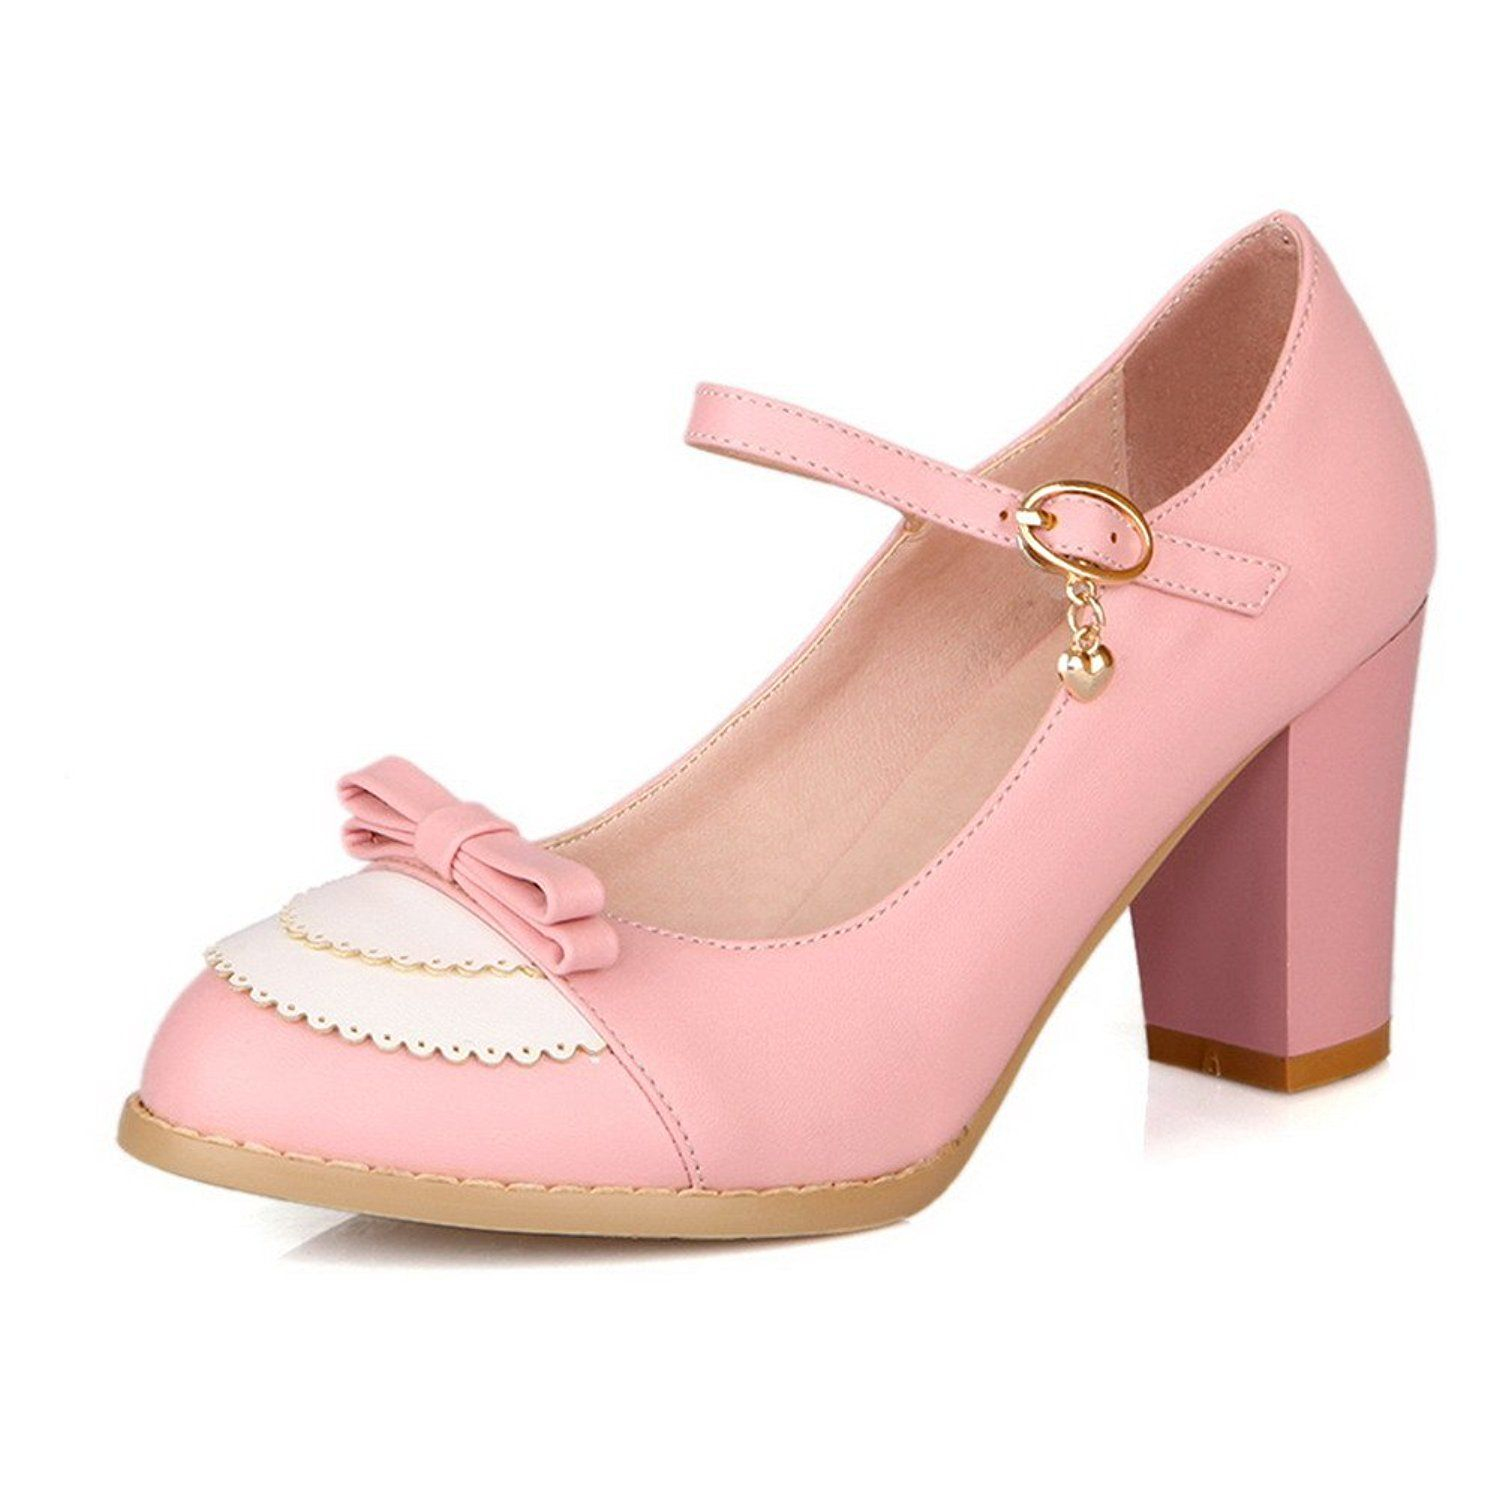 44d2123b953 AmoonyFashion Womens Closed Round Toe Kitten Heel PU Assorted Colors Pumps  with Bowknot and Buckle     Read more at the image link.